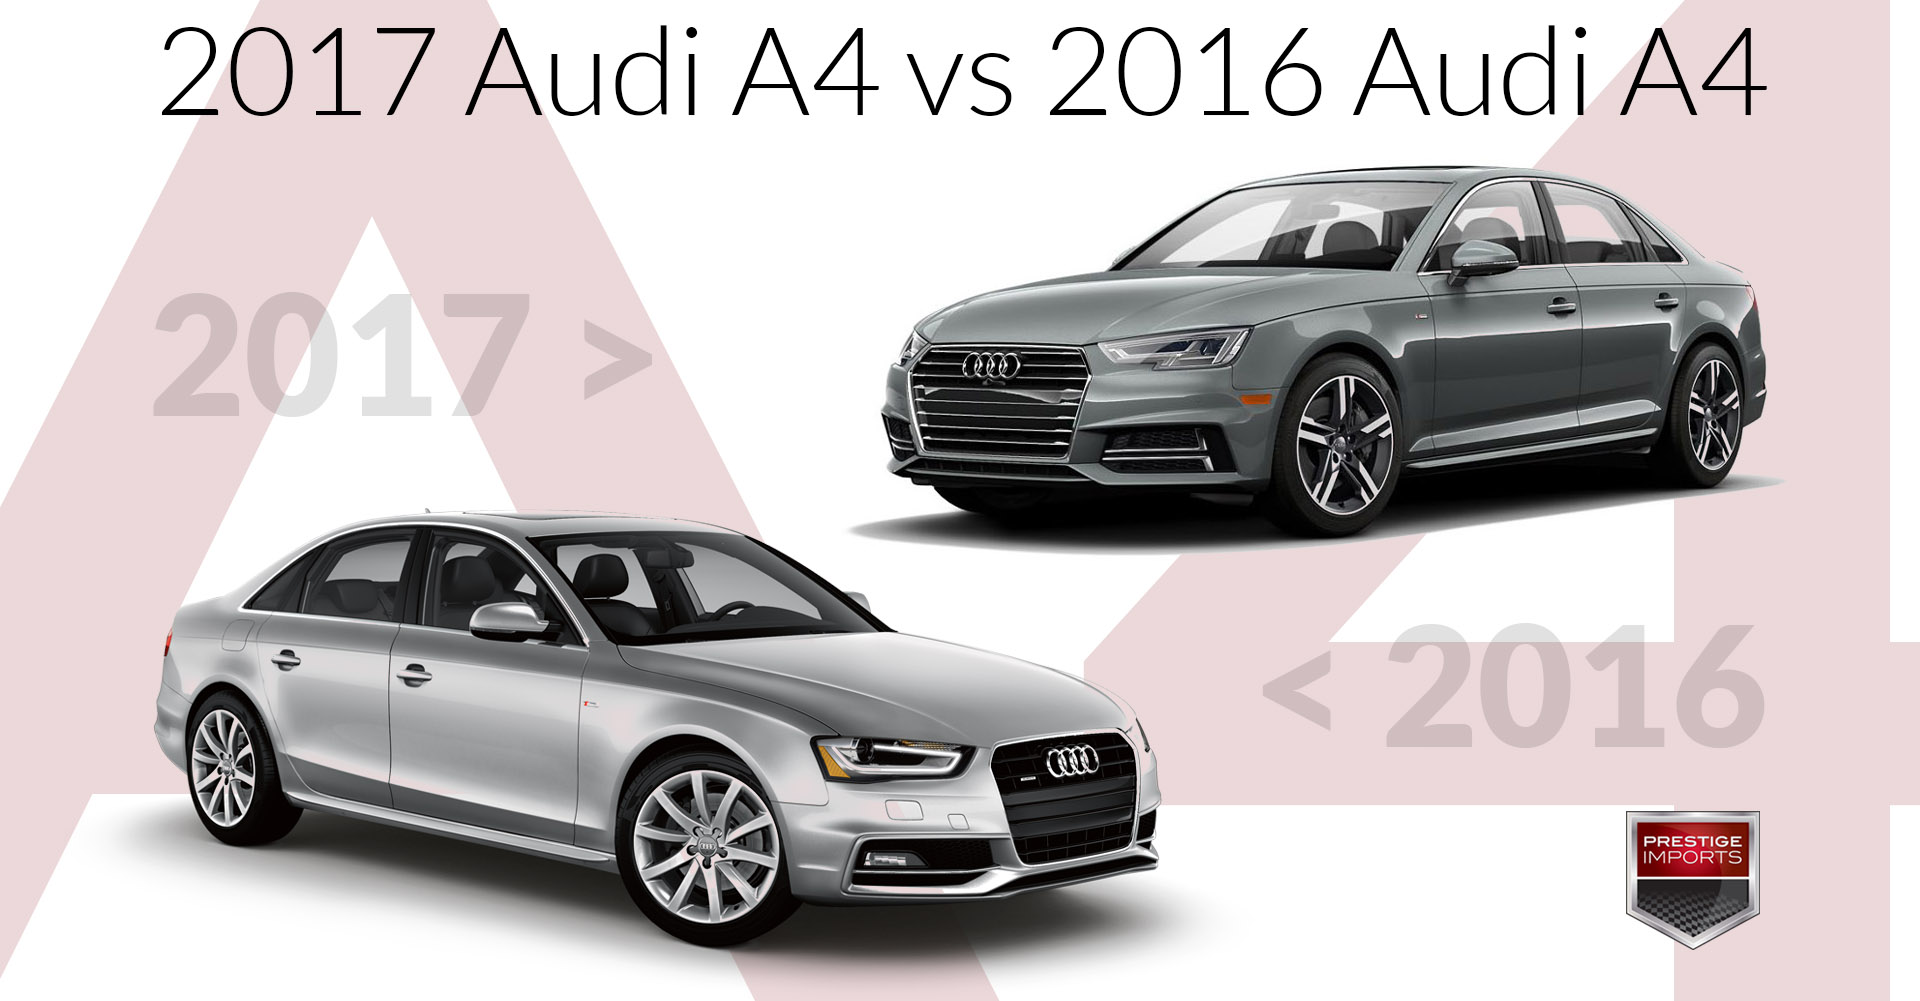 2017 Audi A4 vs 2016 Audi A4 - An insider's perspective